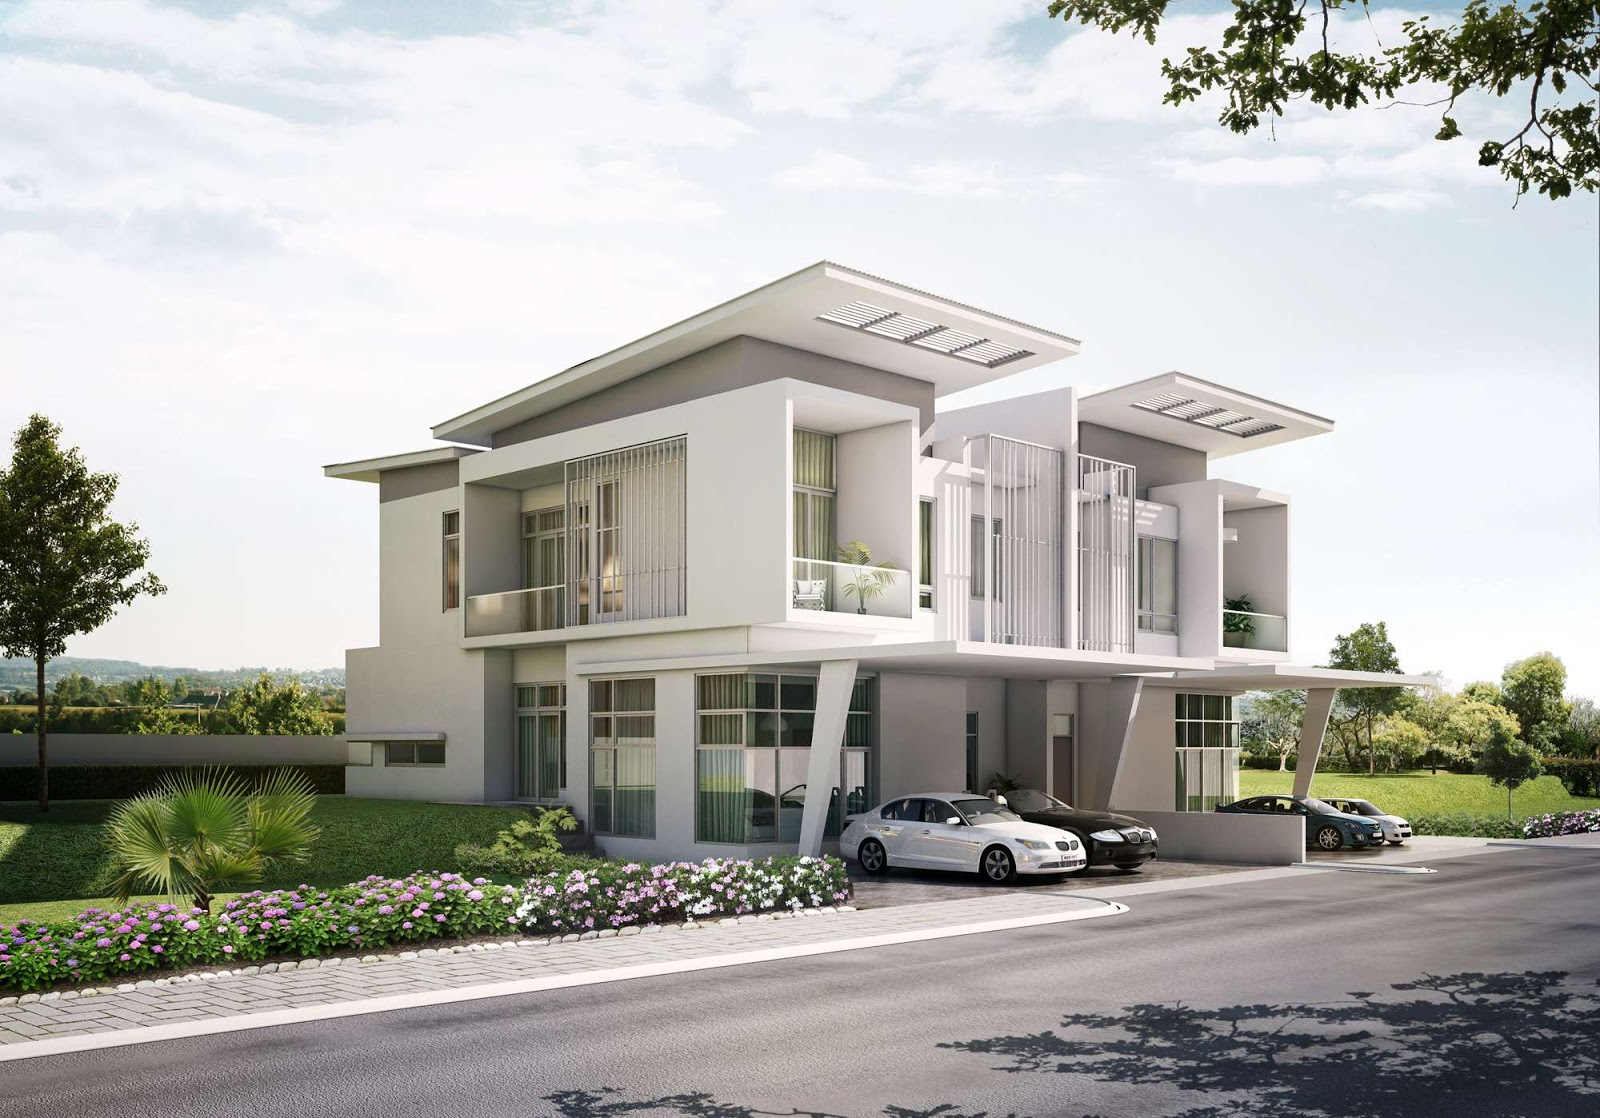 New home designs latest singapore modern homes exterior for House design exterior colors